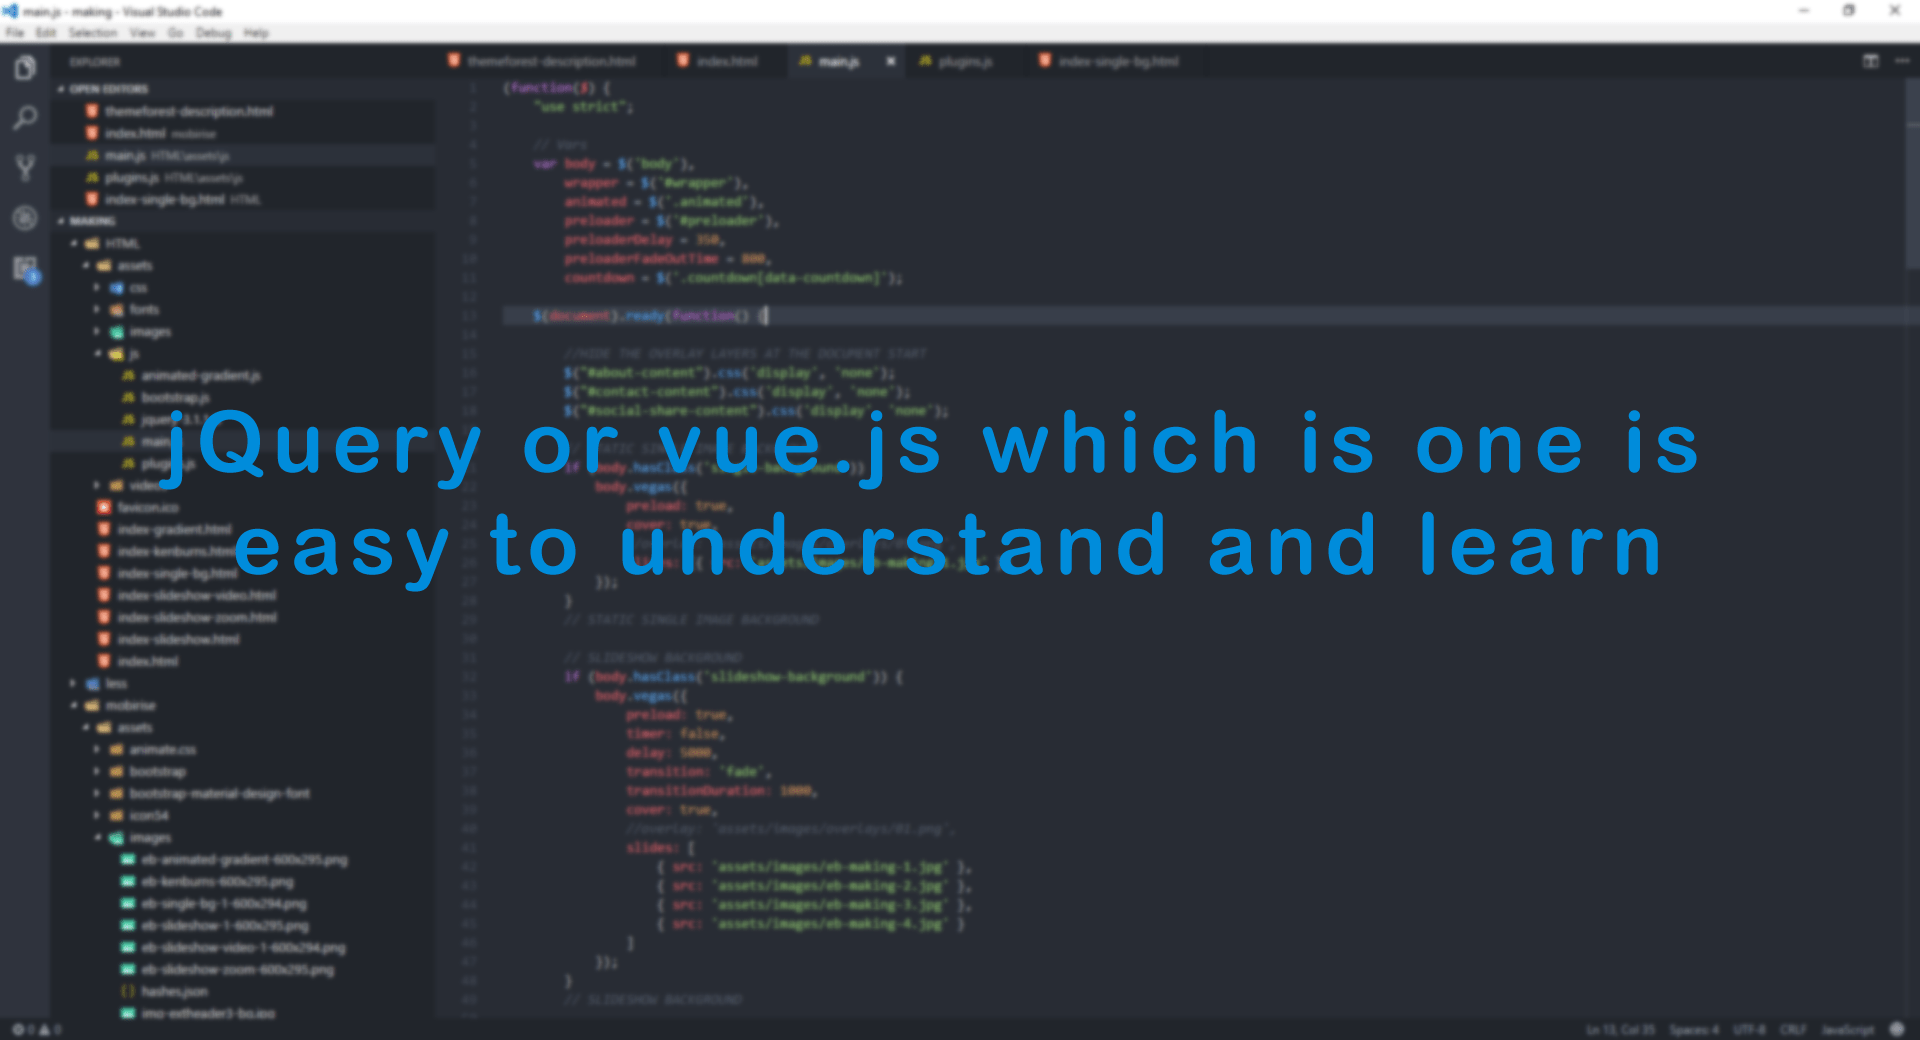 jQuery or vue.js which is one is easy to understand and learn